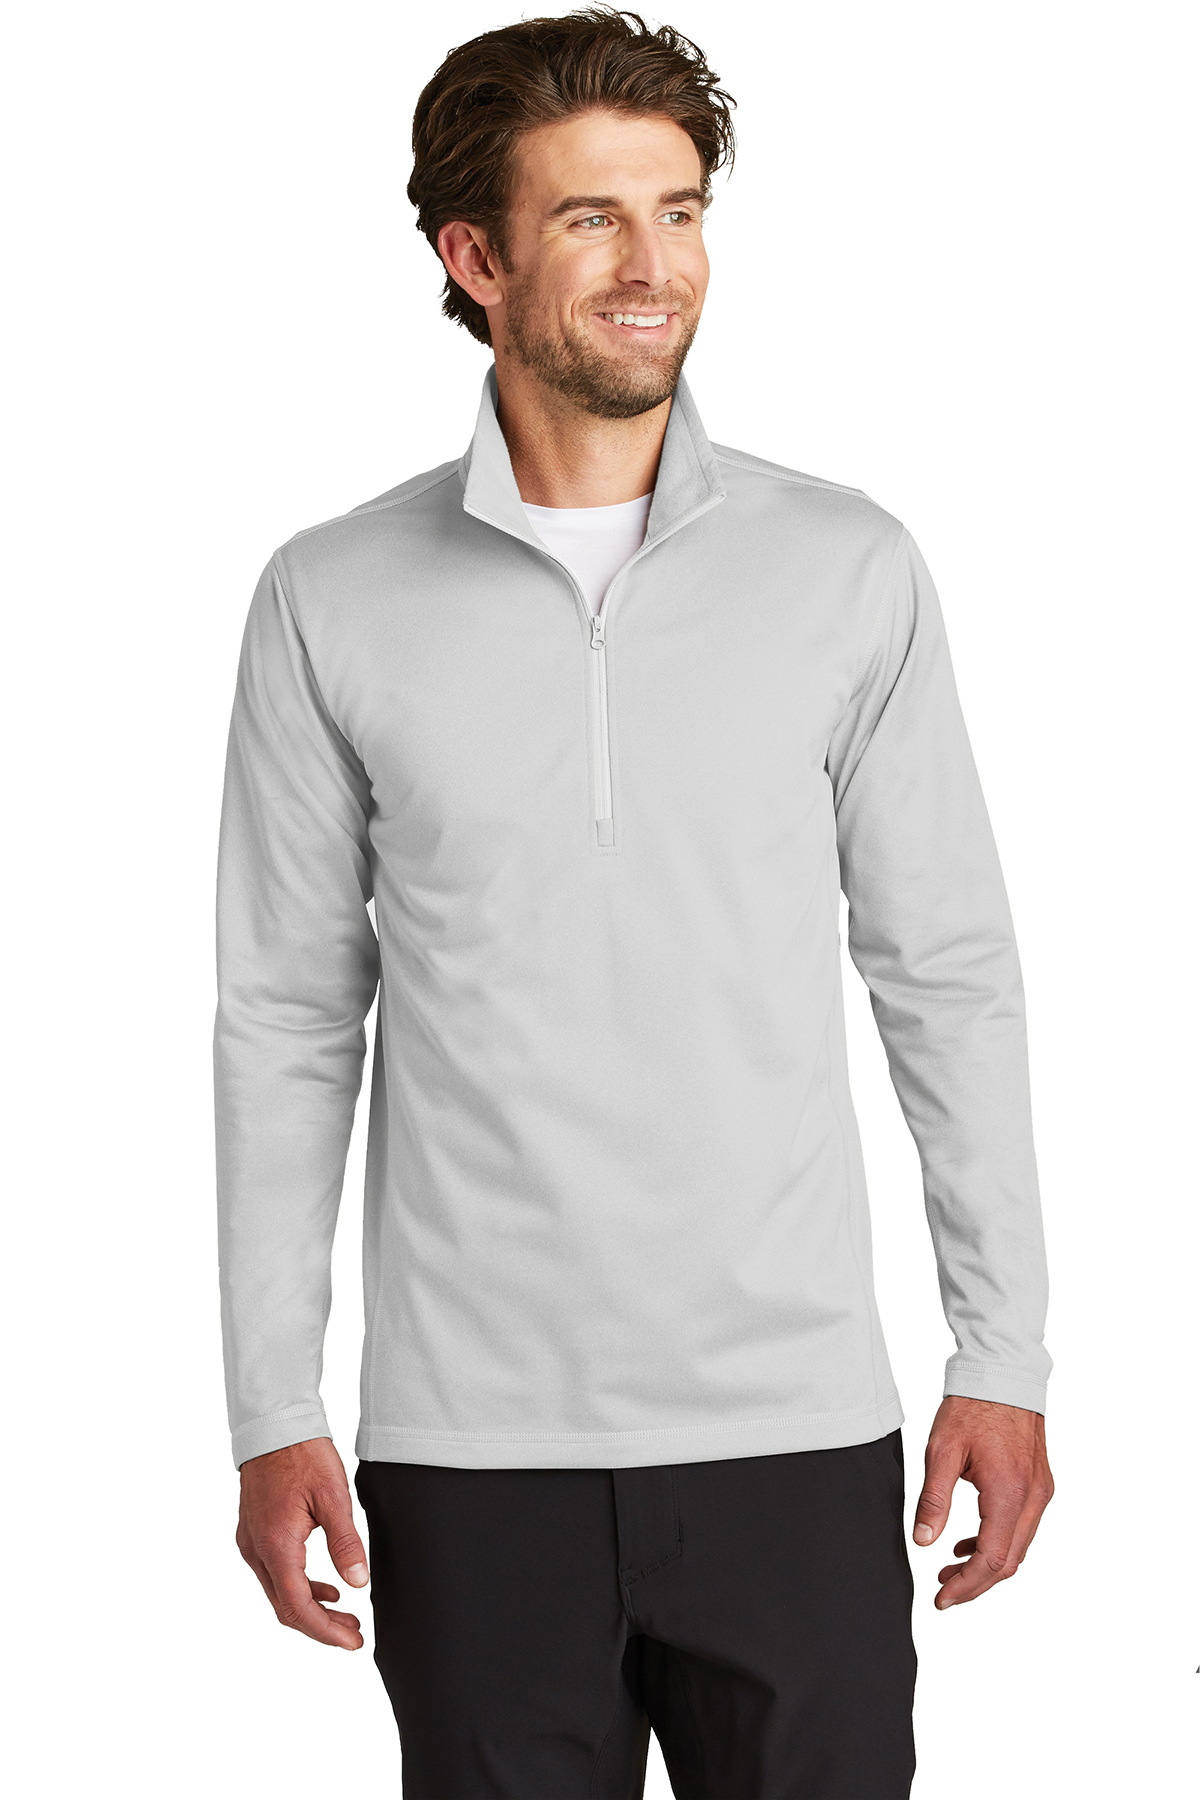 The North Face® NF0A3LHB - Men's Tech 1/4-Zip Fleece